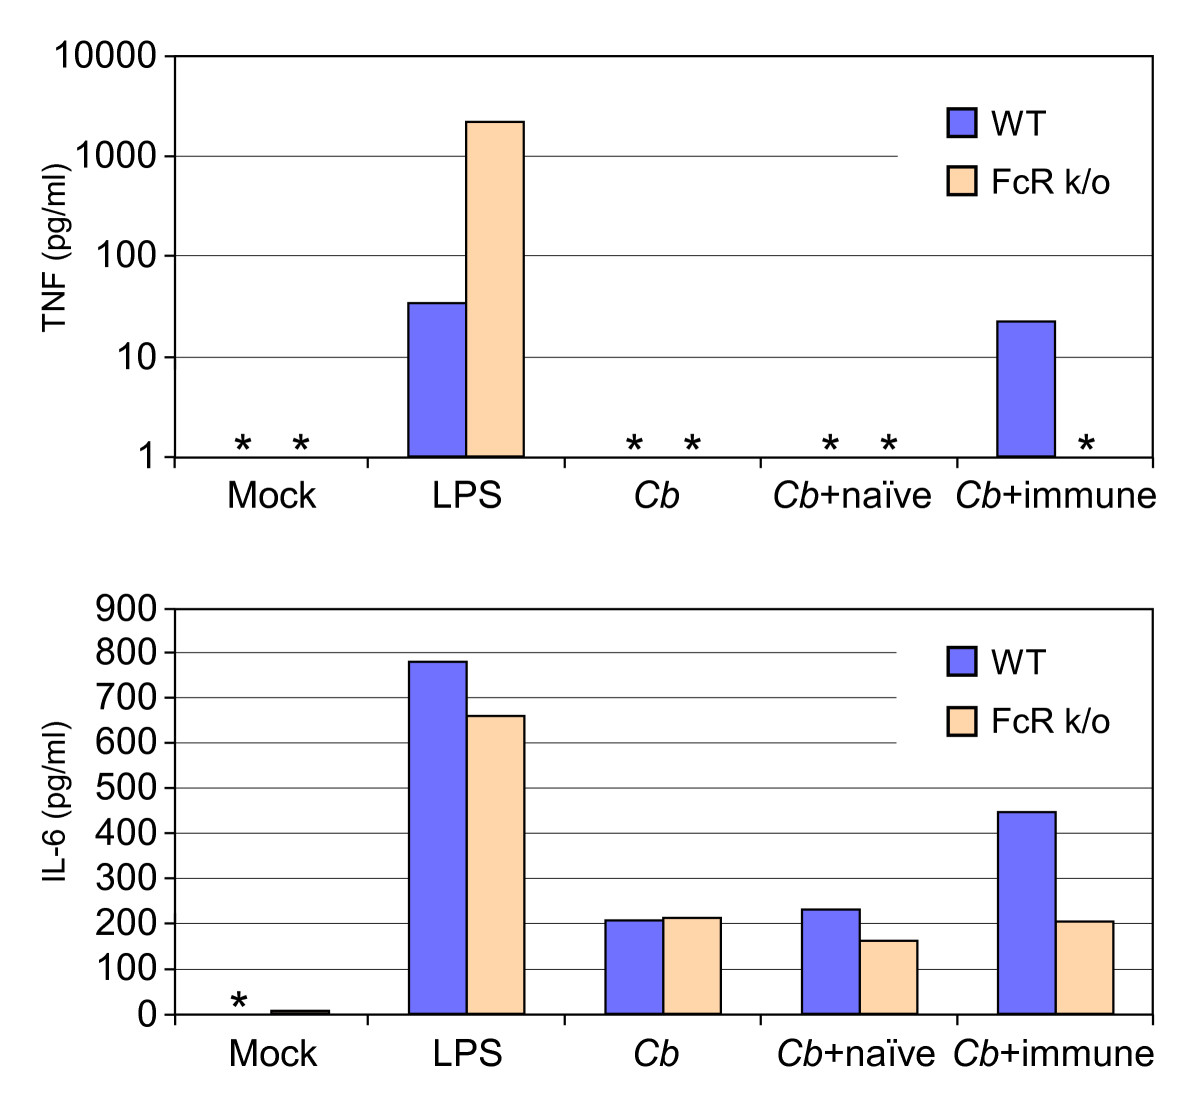 https://static-content.springer.com/image/art%3A10.1186%2F1471-2172-10-26/MediaObjects/12865_2008_Article_246_Fig4_HTML.jpg